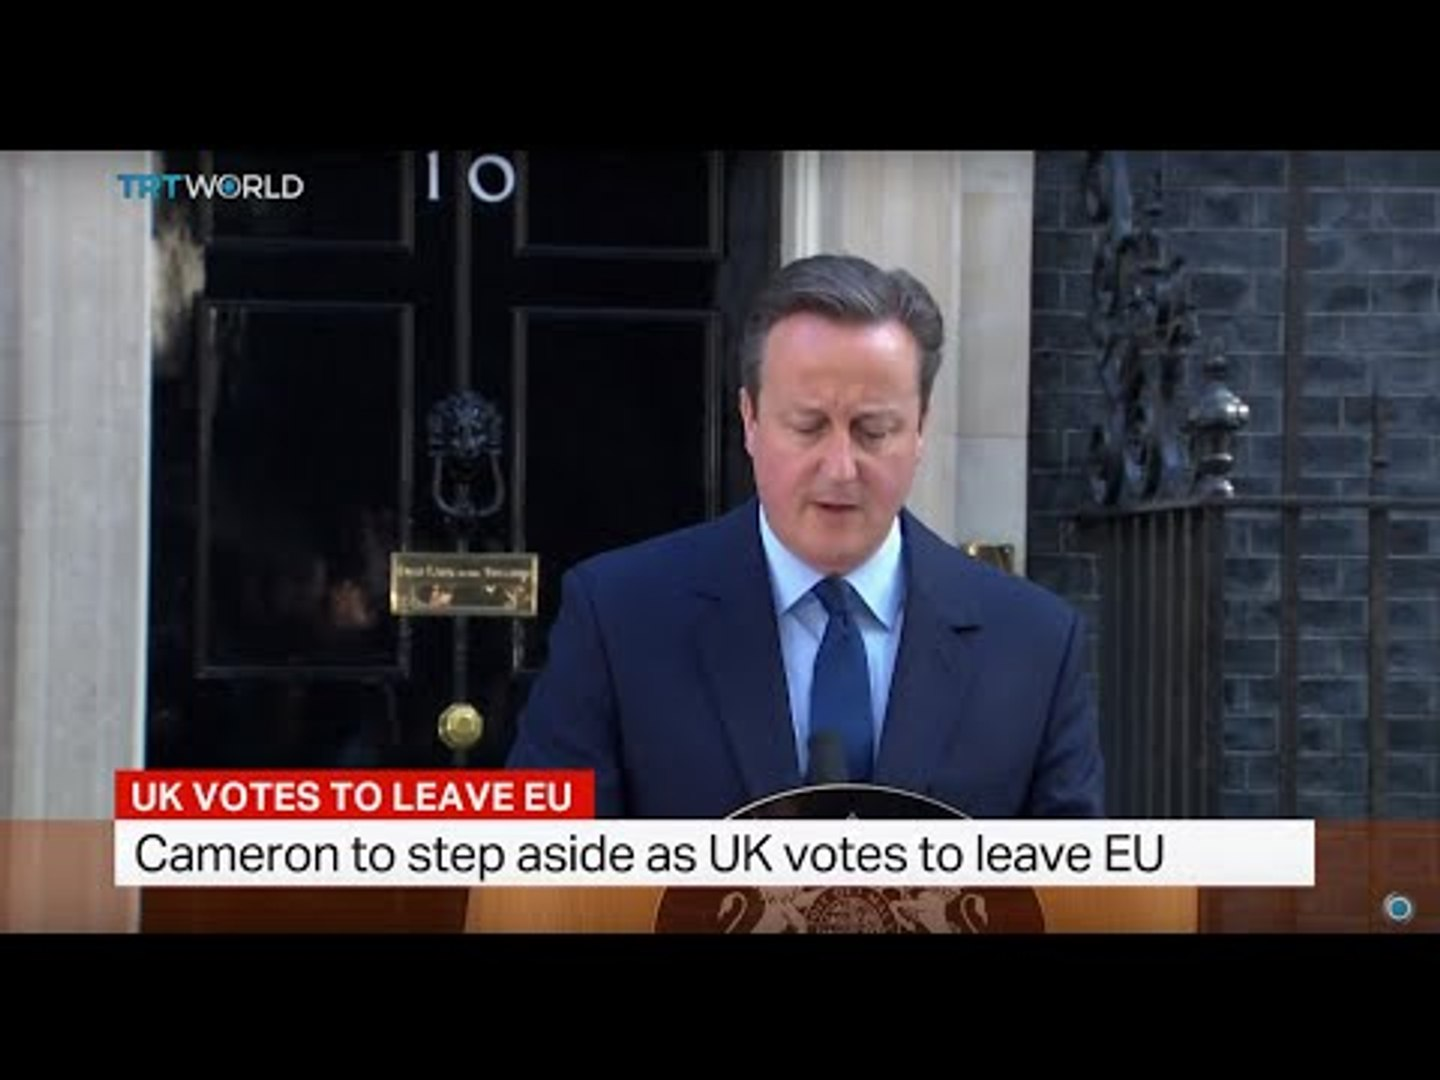 Cameron to step aside as UK votes to leave EU, Simon McGregor-Wood reports